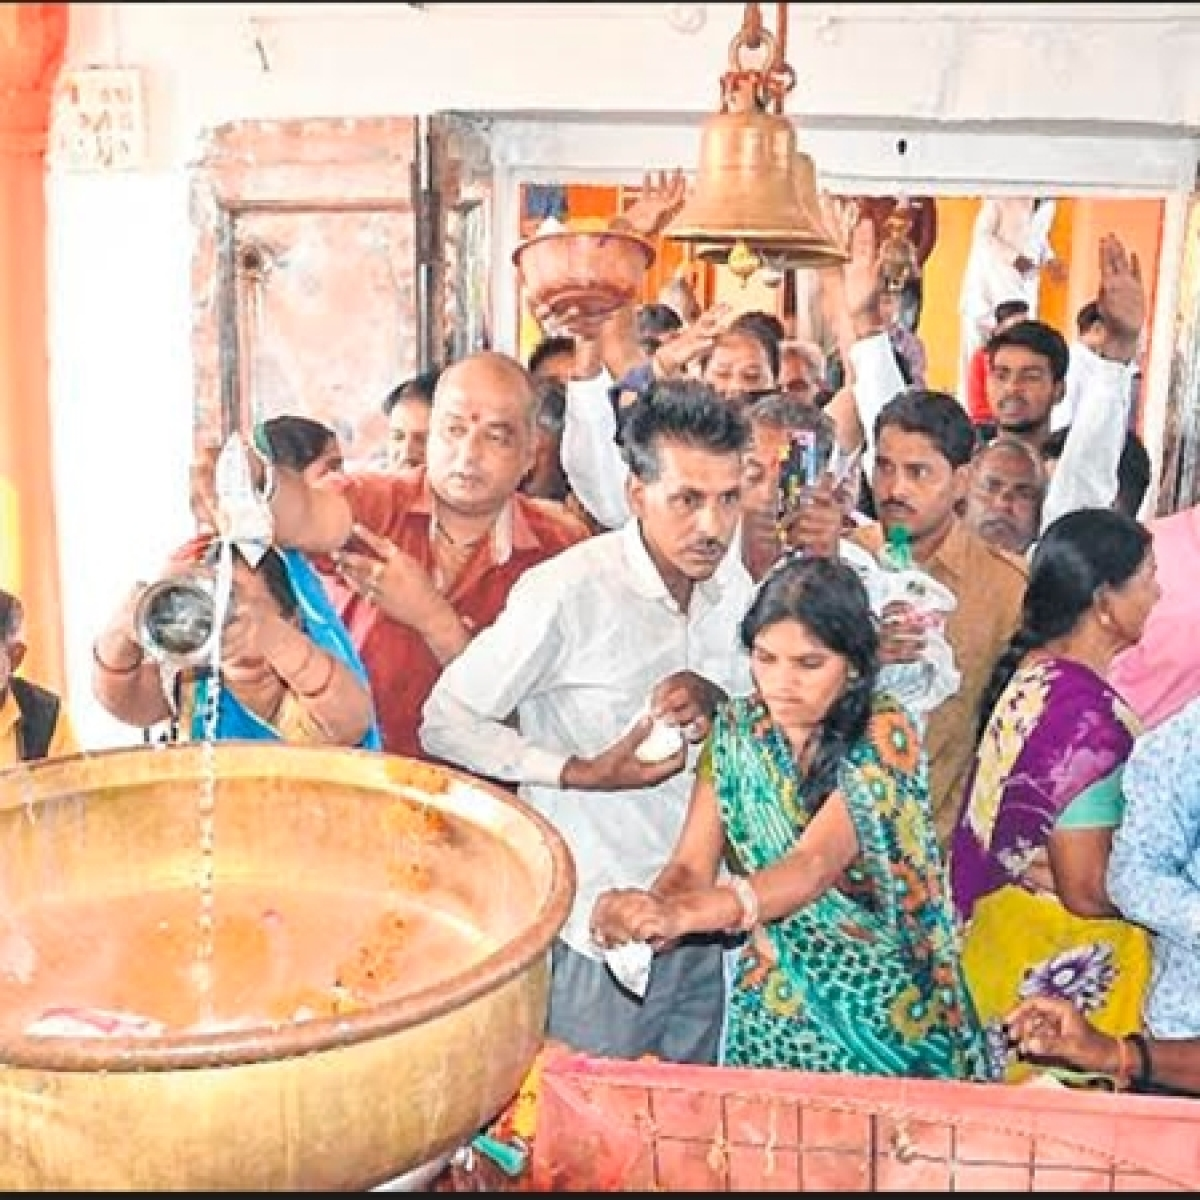 Ujjain: Devotees pray for ancestors' peace on 'baikunth chathurthi'